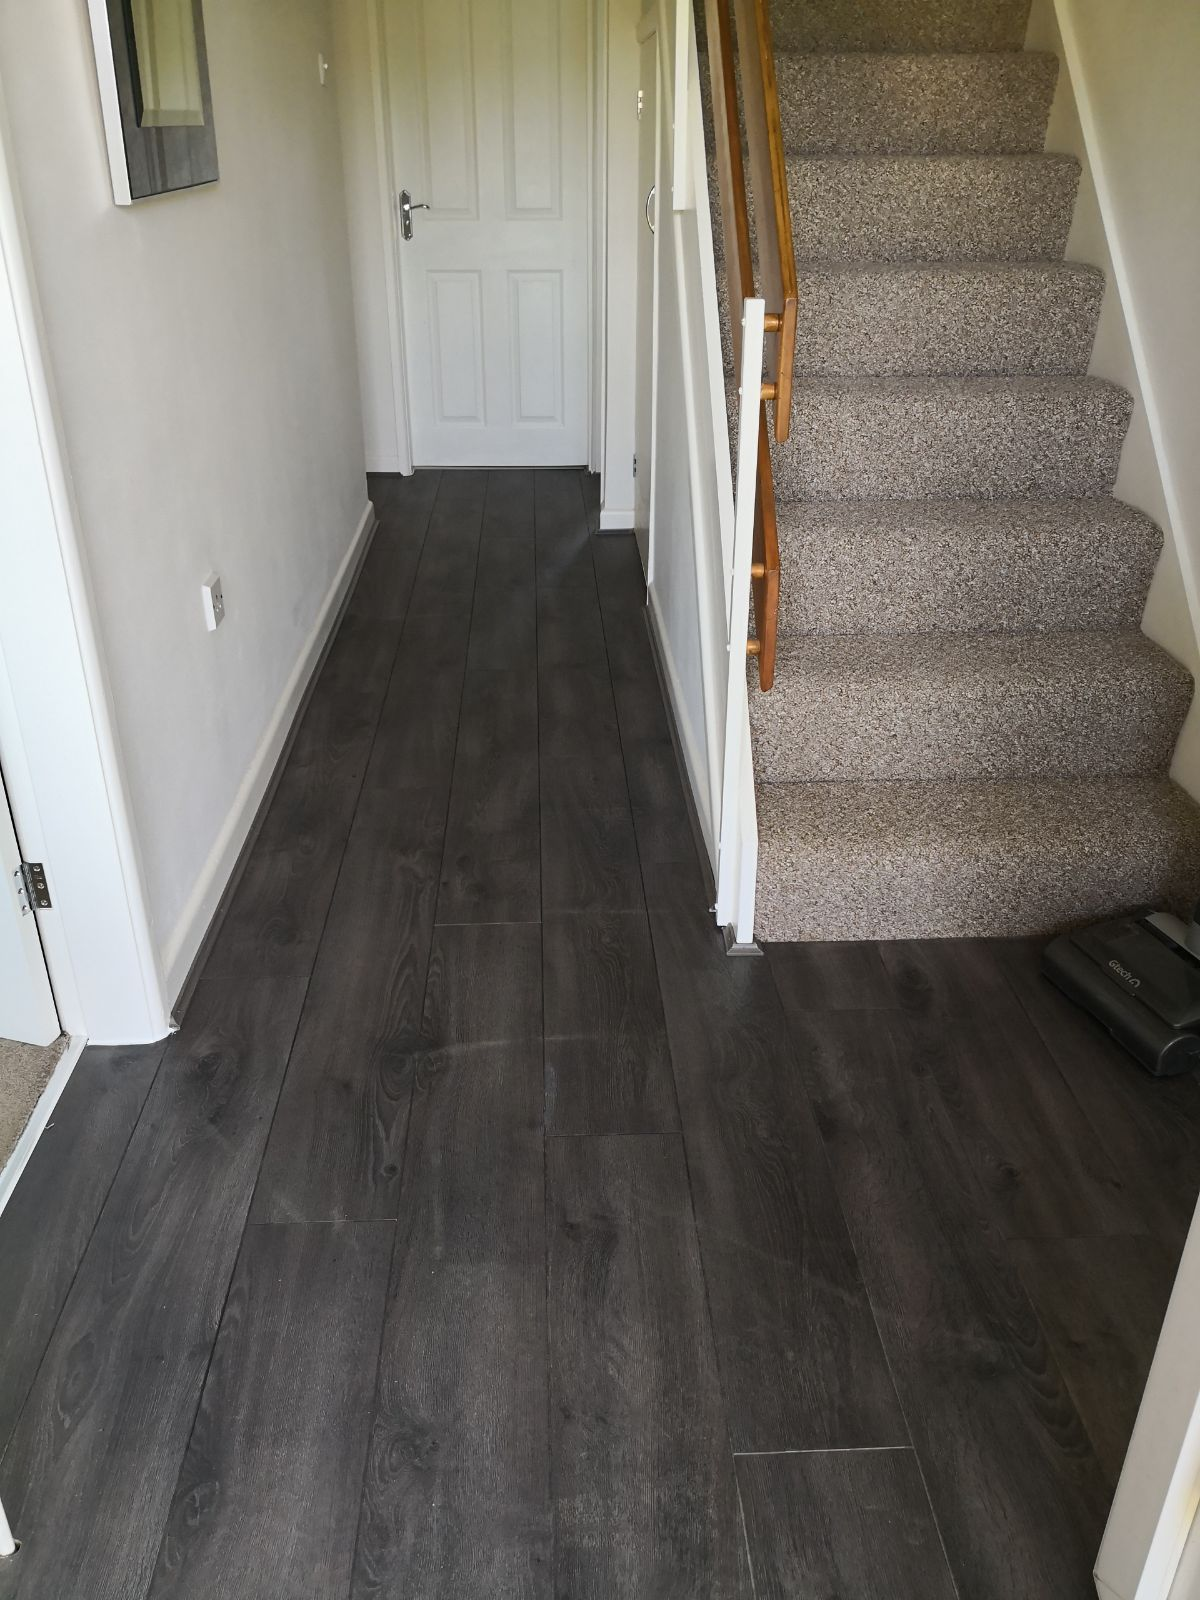 Lifestyle Floors Soho Strand Oak Laminat Flooring The Carpet Southport 3